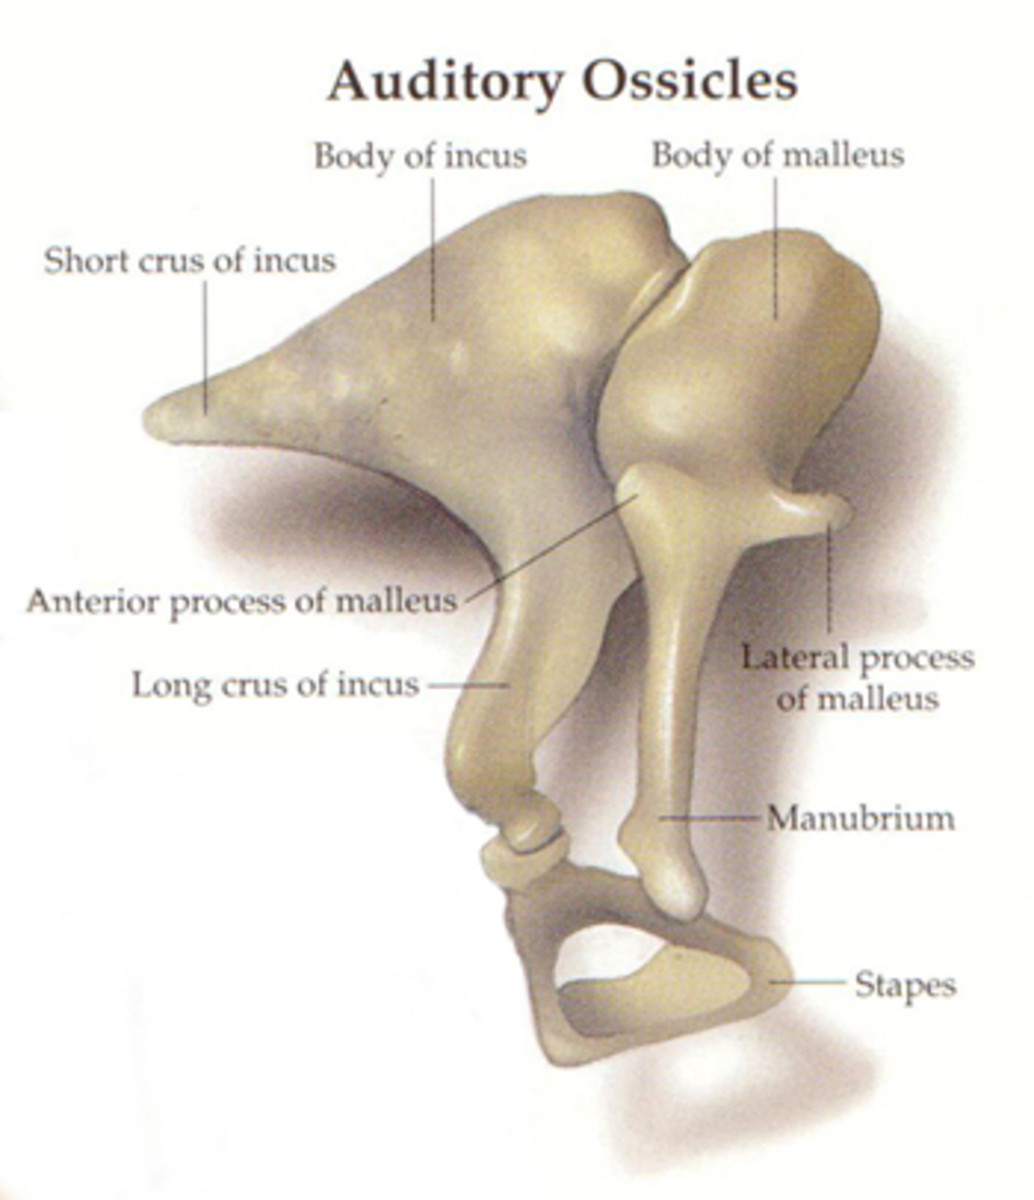 The Ossicles